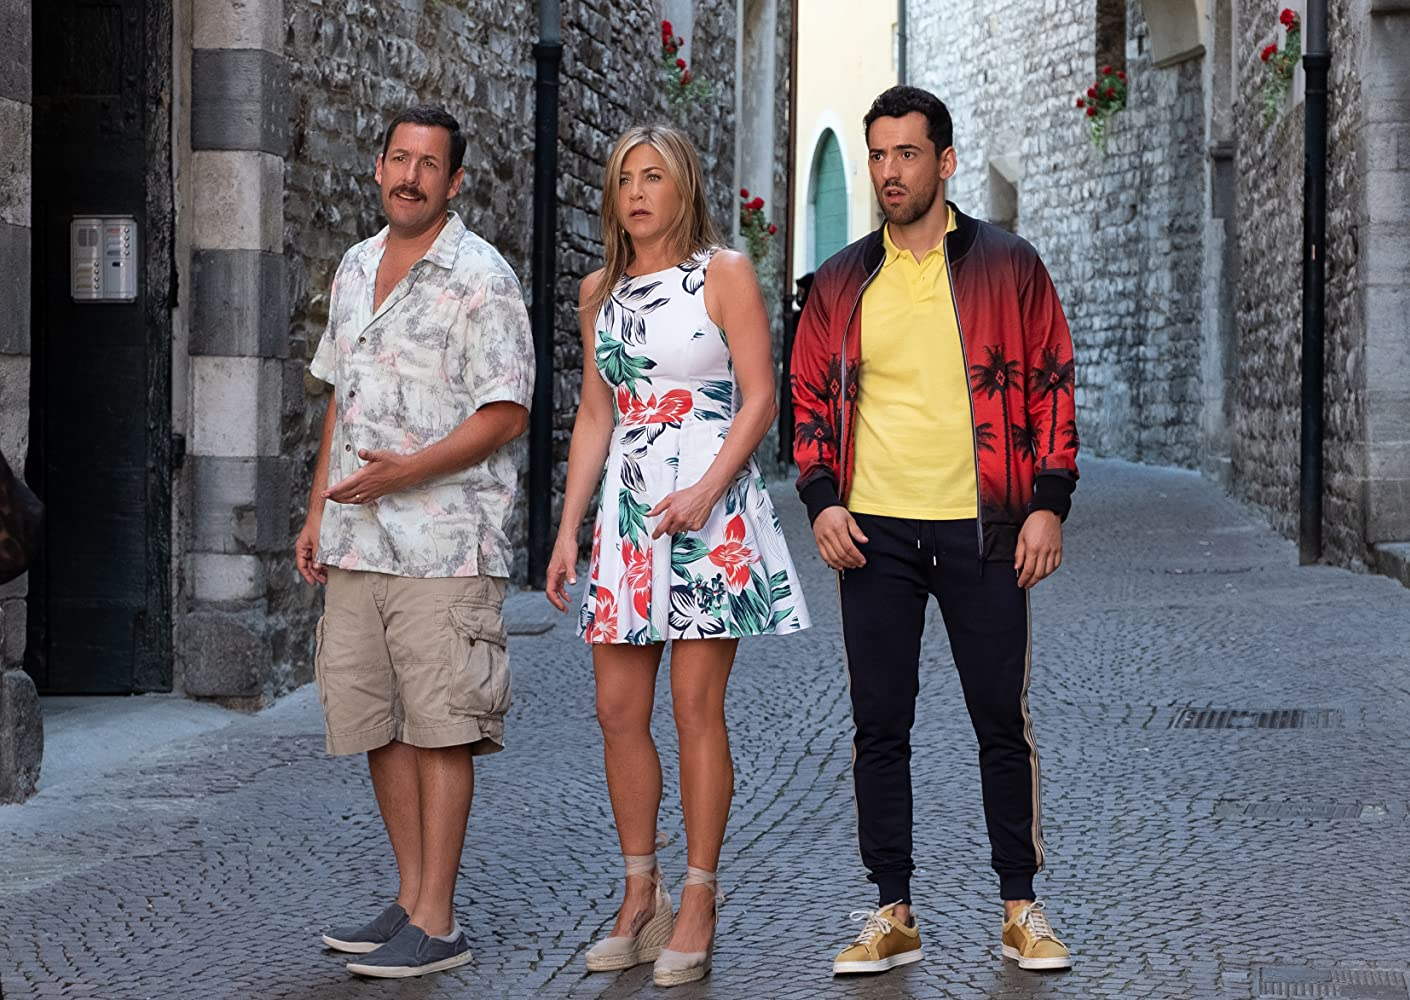 Jennifer Aniston, Adam Sandler, and Luis Gerardo Méndez in Murder Mystery (2019)